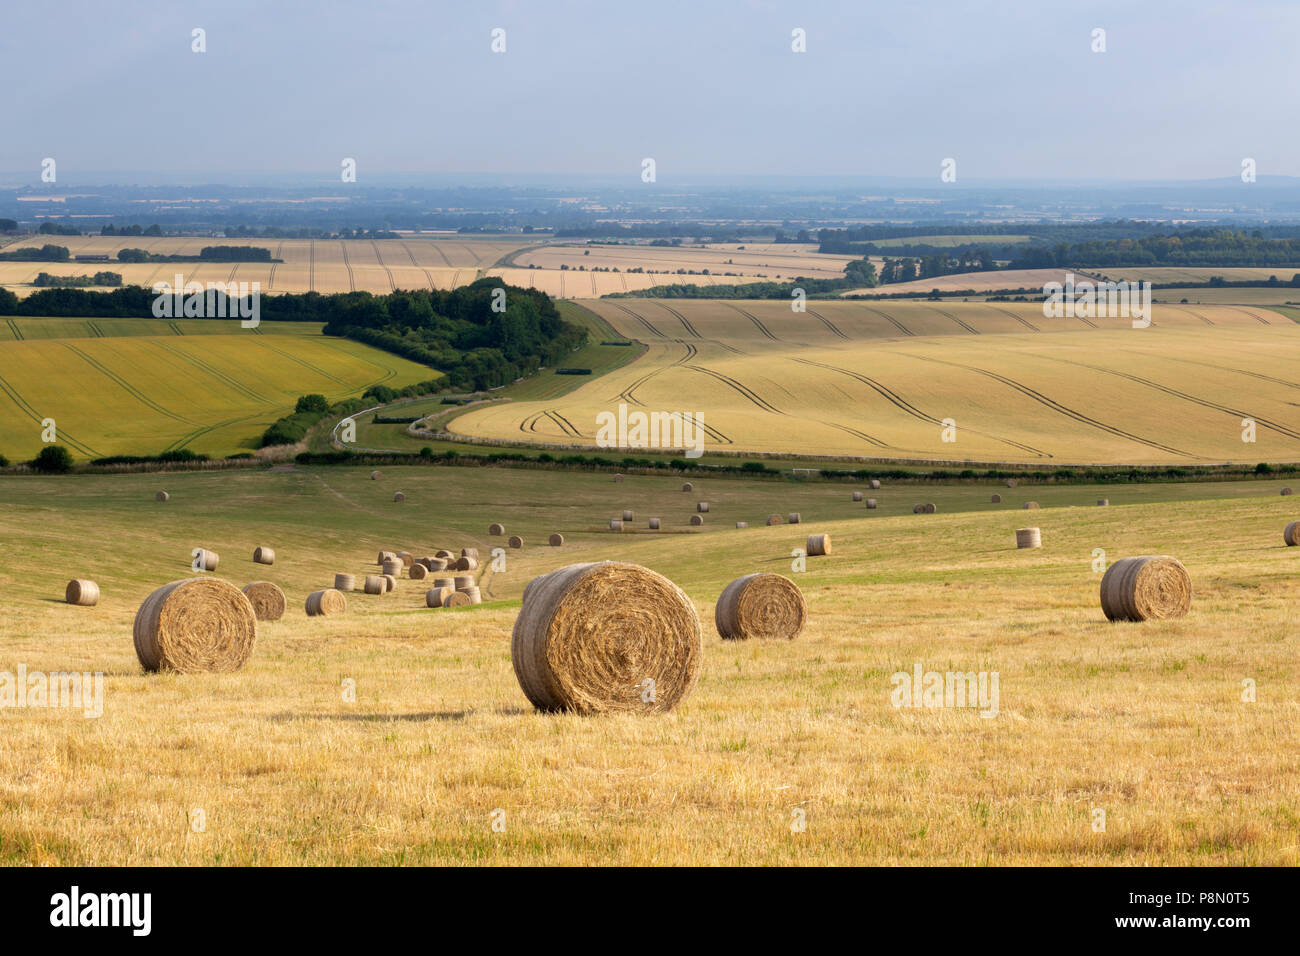 Round hay bales and views over farmland of Oxfordshire above the town of Wantage viewed from the Ridgeway trail, Oxfordshire, England, United Kingdom - Stock Image